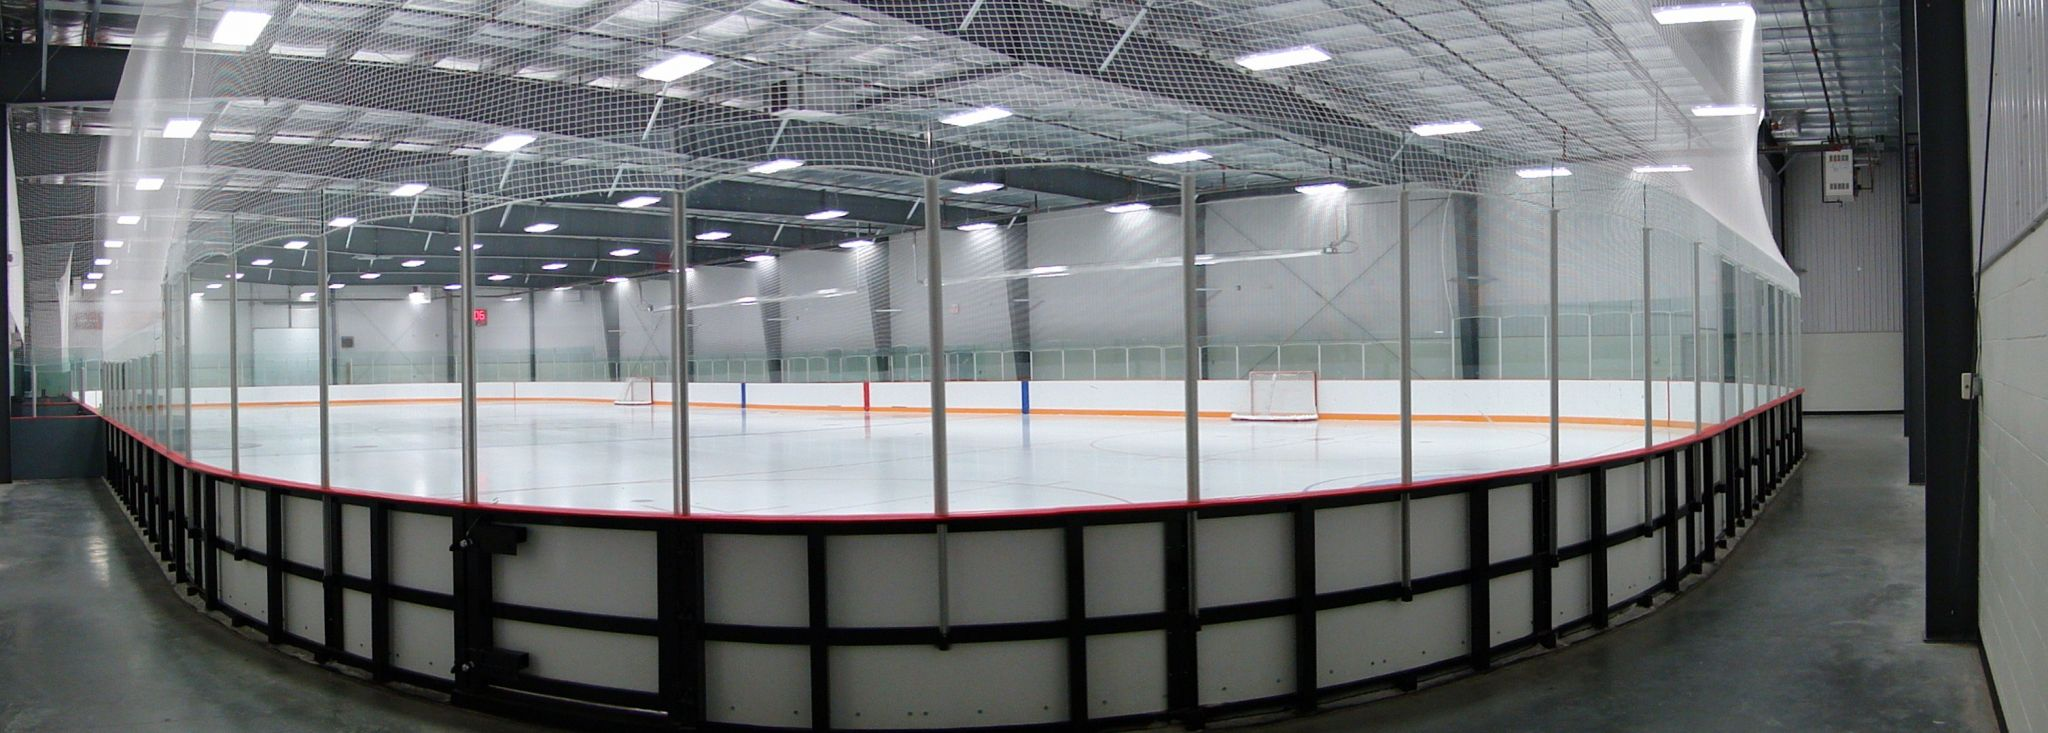 The 18,580-m2 (200,000-sf) Spray Lake Sawmills Family Sports Centre (Cochrane, Alta.) was completed in several phases. It offers track, turf, and gymnastics areas as well as several arenas and program rooms.